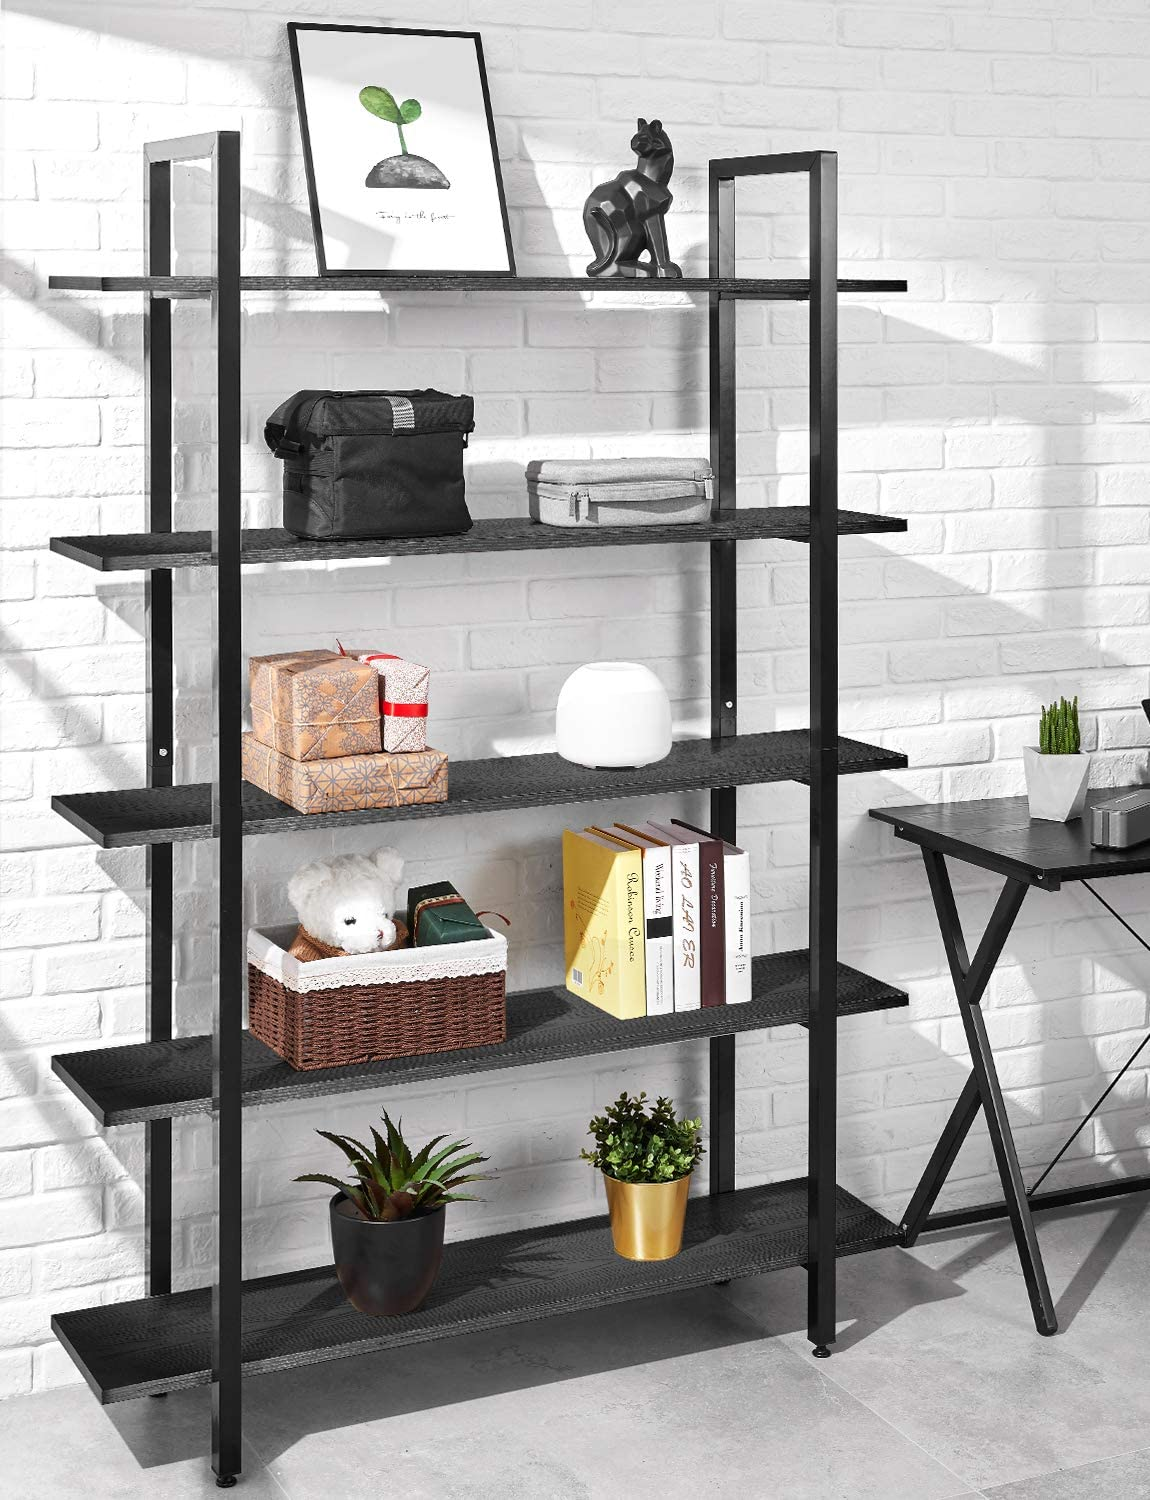 ORAF Bookshelf 5 Tier 47Lx13Wx70H inches Bookcase Solid 130lbs Load Capacity Industrial Bookshelf, Sturdy Bookshelves with Steel Frame, Assemble Easily Storage Organizer Home Office Shelf, Black